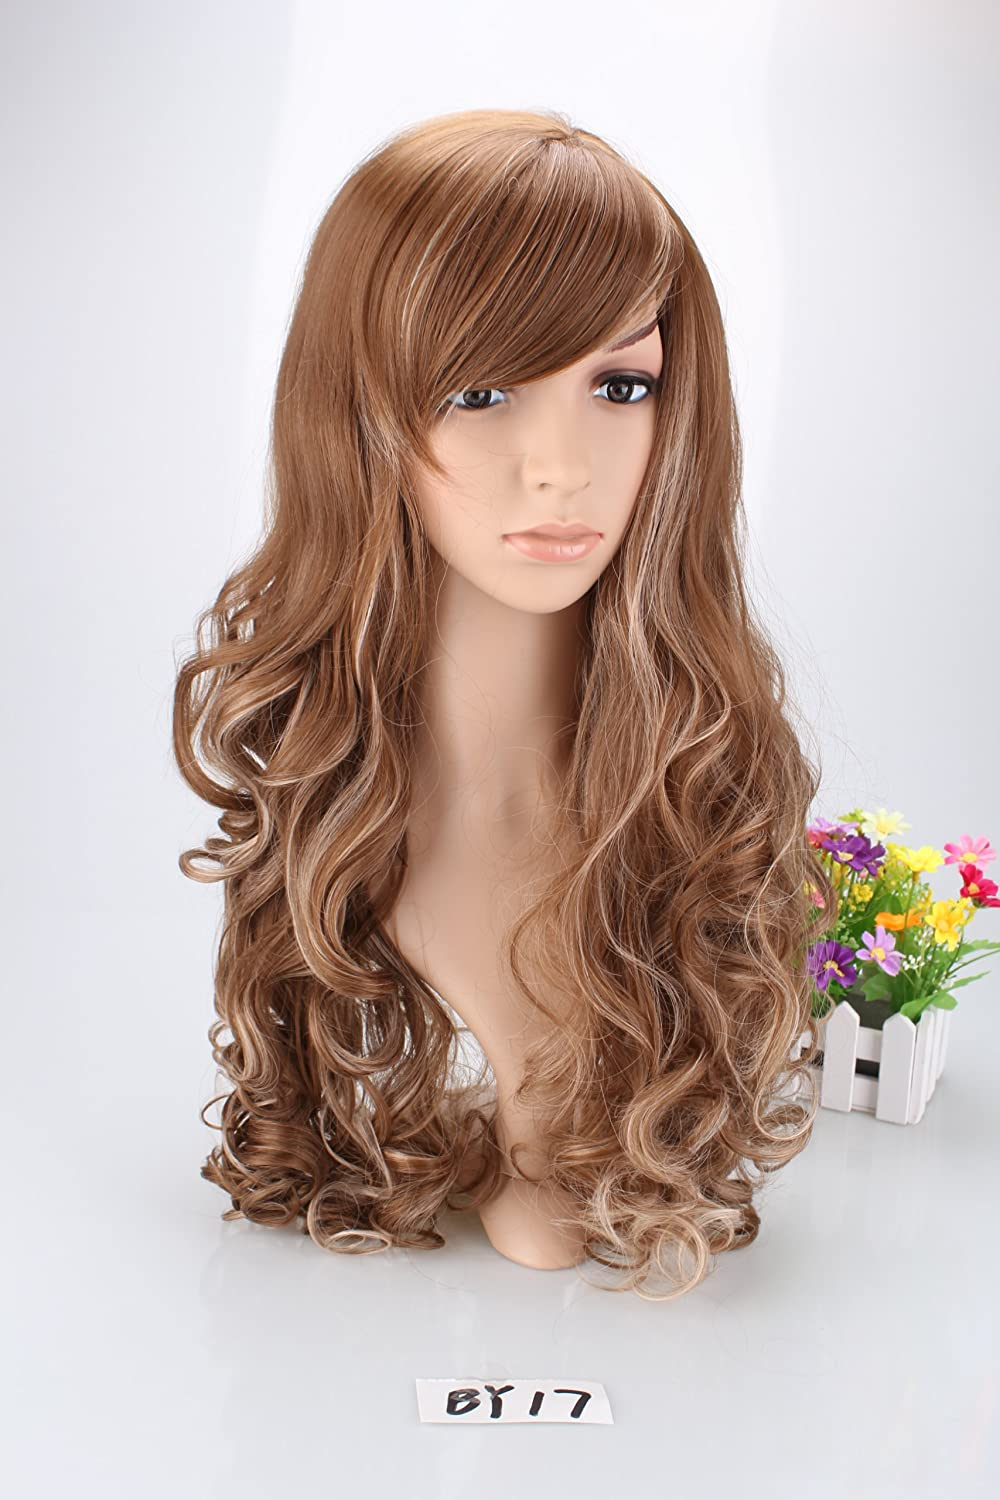 Amazon liz wig long wavy cosplay wig 26 ltown w blonde amazon liz wig long wavy cosplay wig 26 ltown w blonde highlights beauty urmus Choice Image